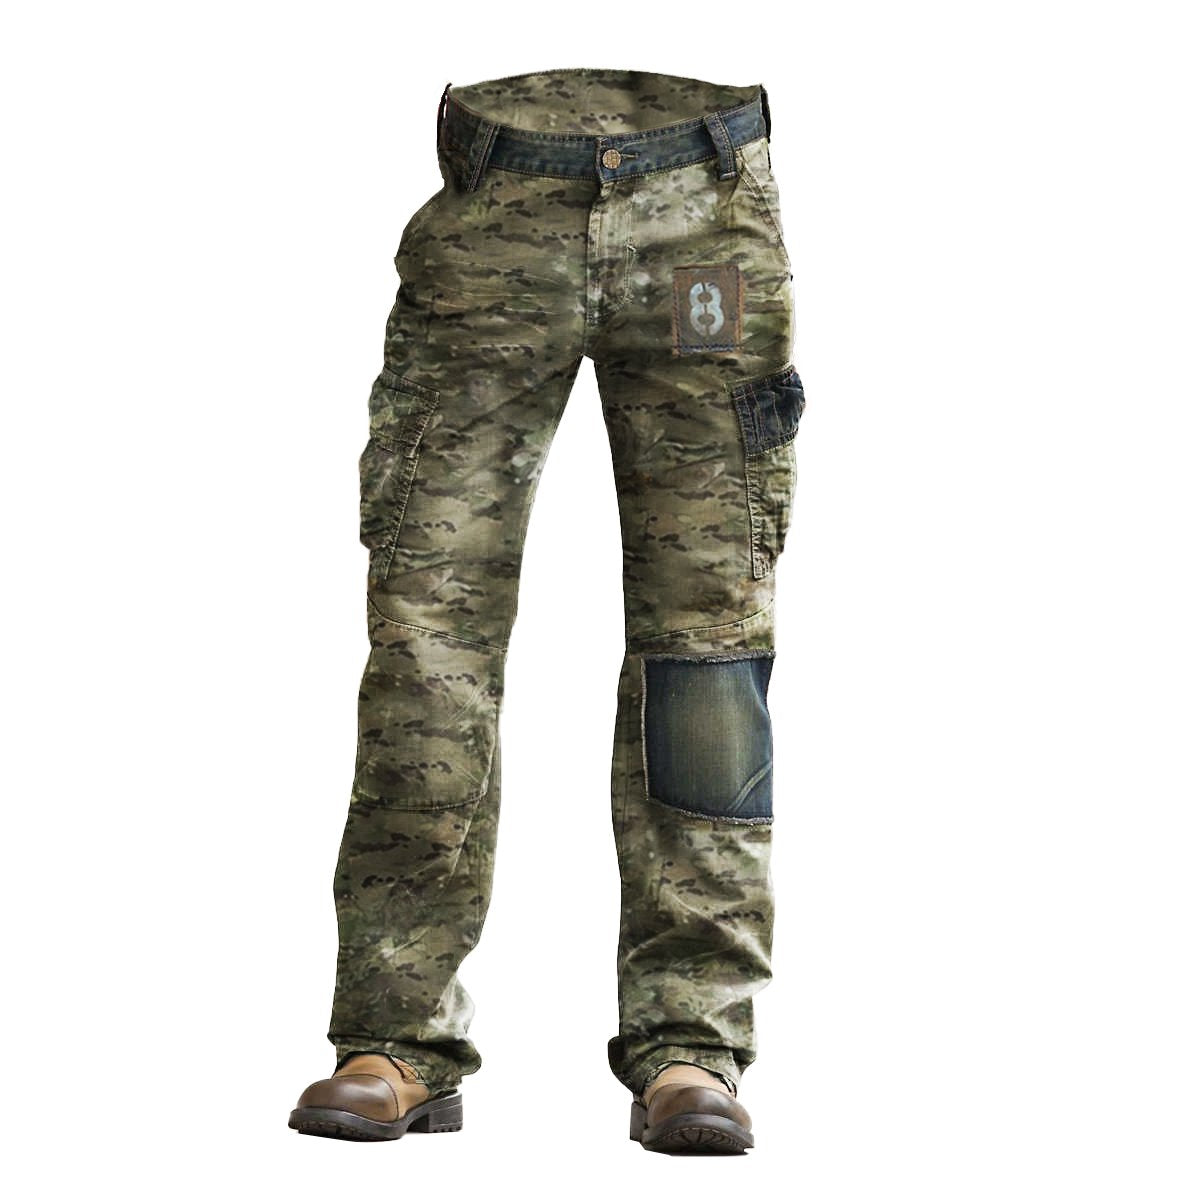 Outdoor Camouflage Wear-resistant Military Trousers